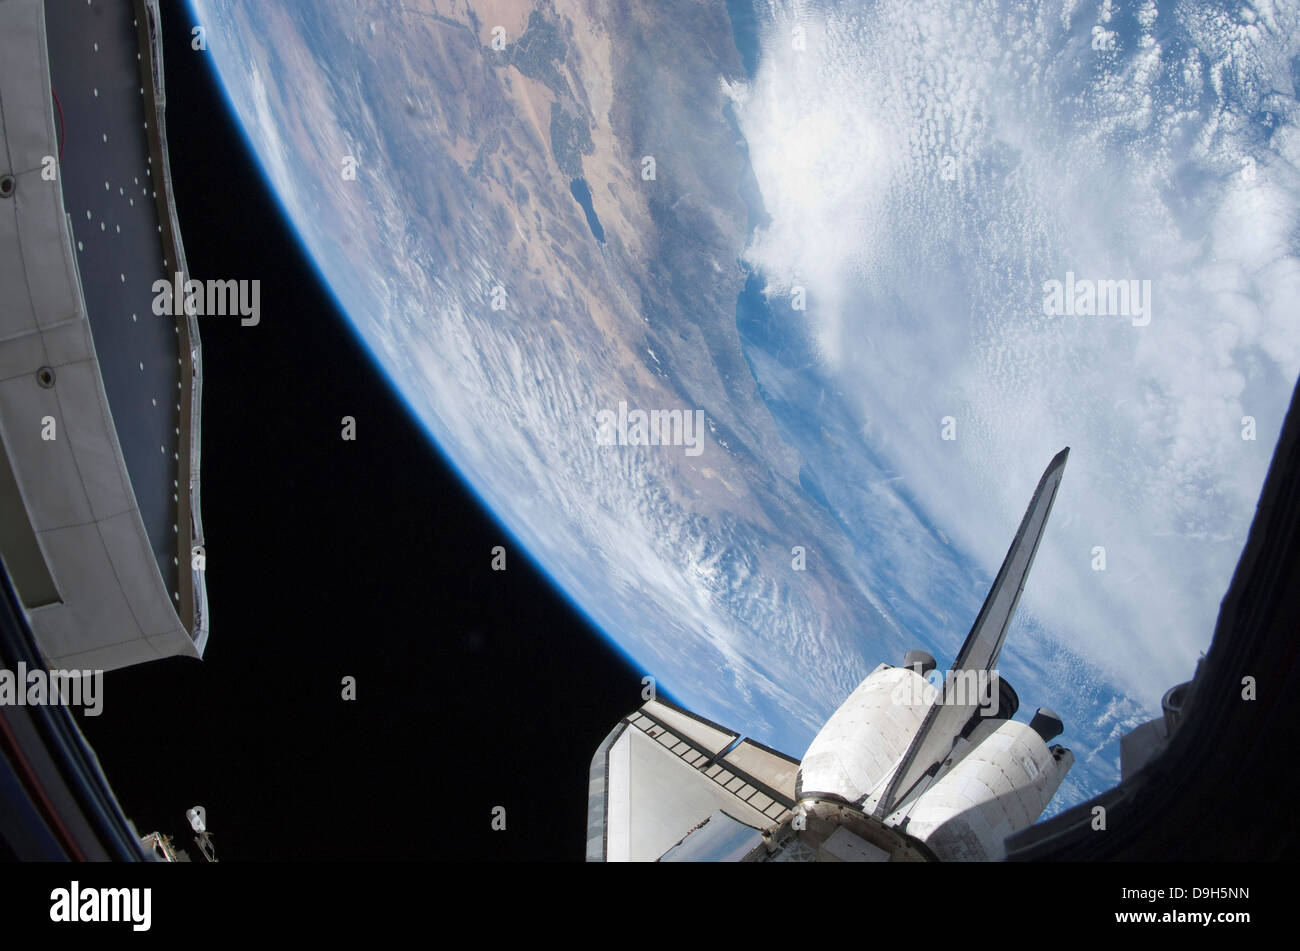 Part of space shuttle Discovery backdropped against the Pacific Coast of California. - Stock Image